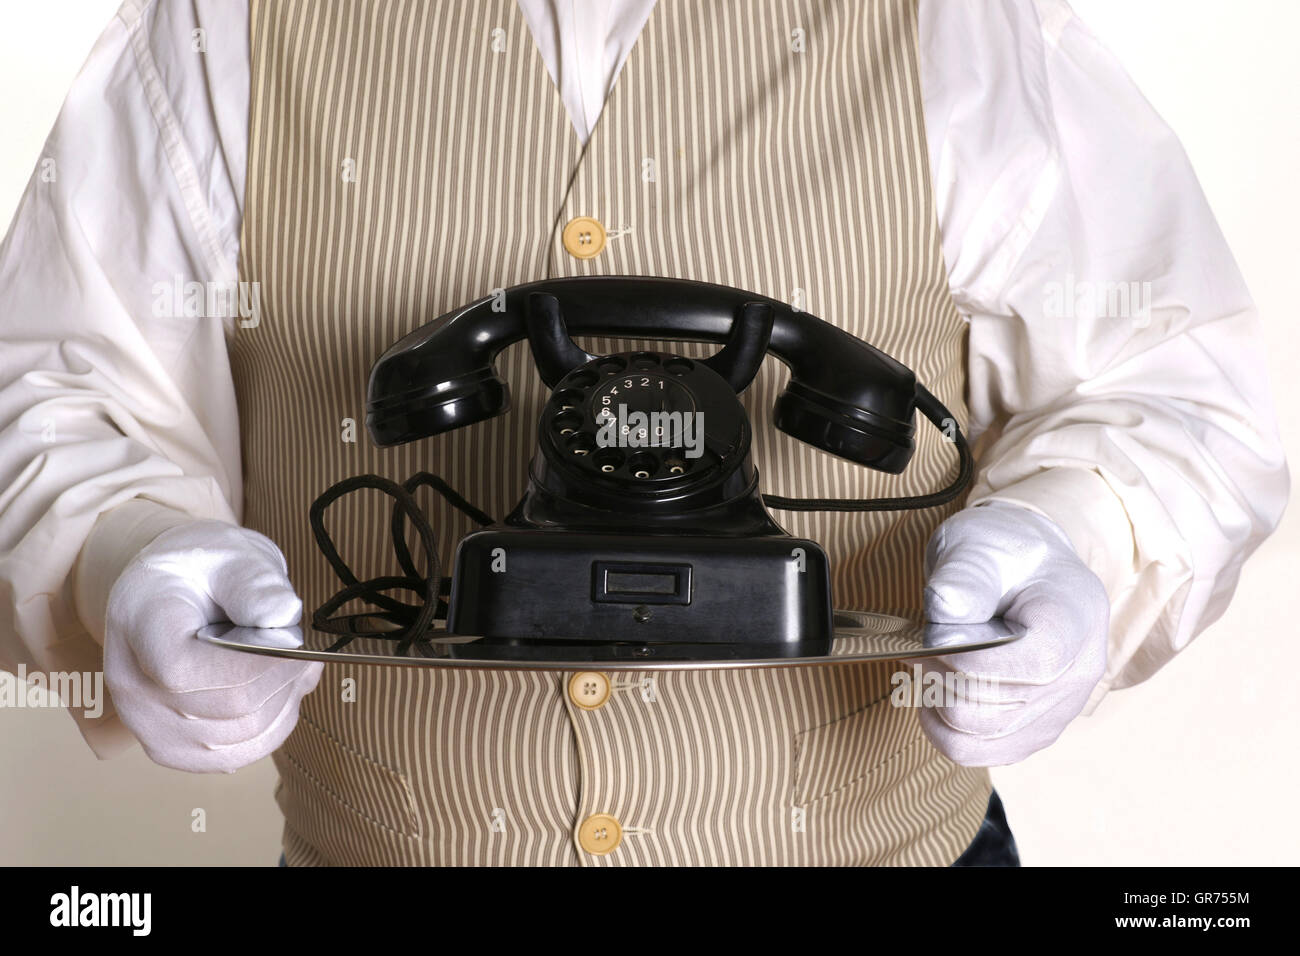 Butler With A Old Telephon - Stock Image